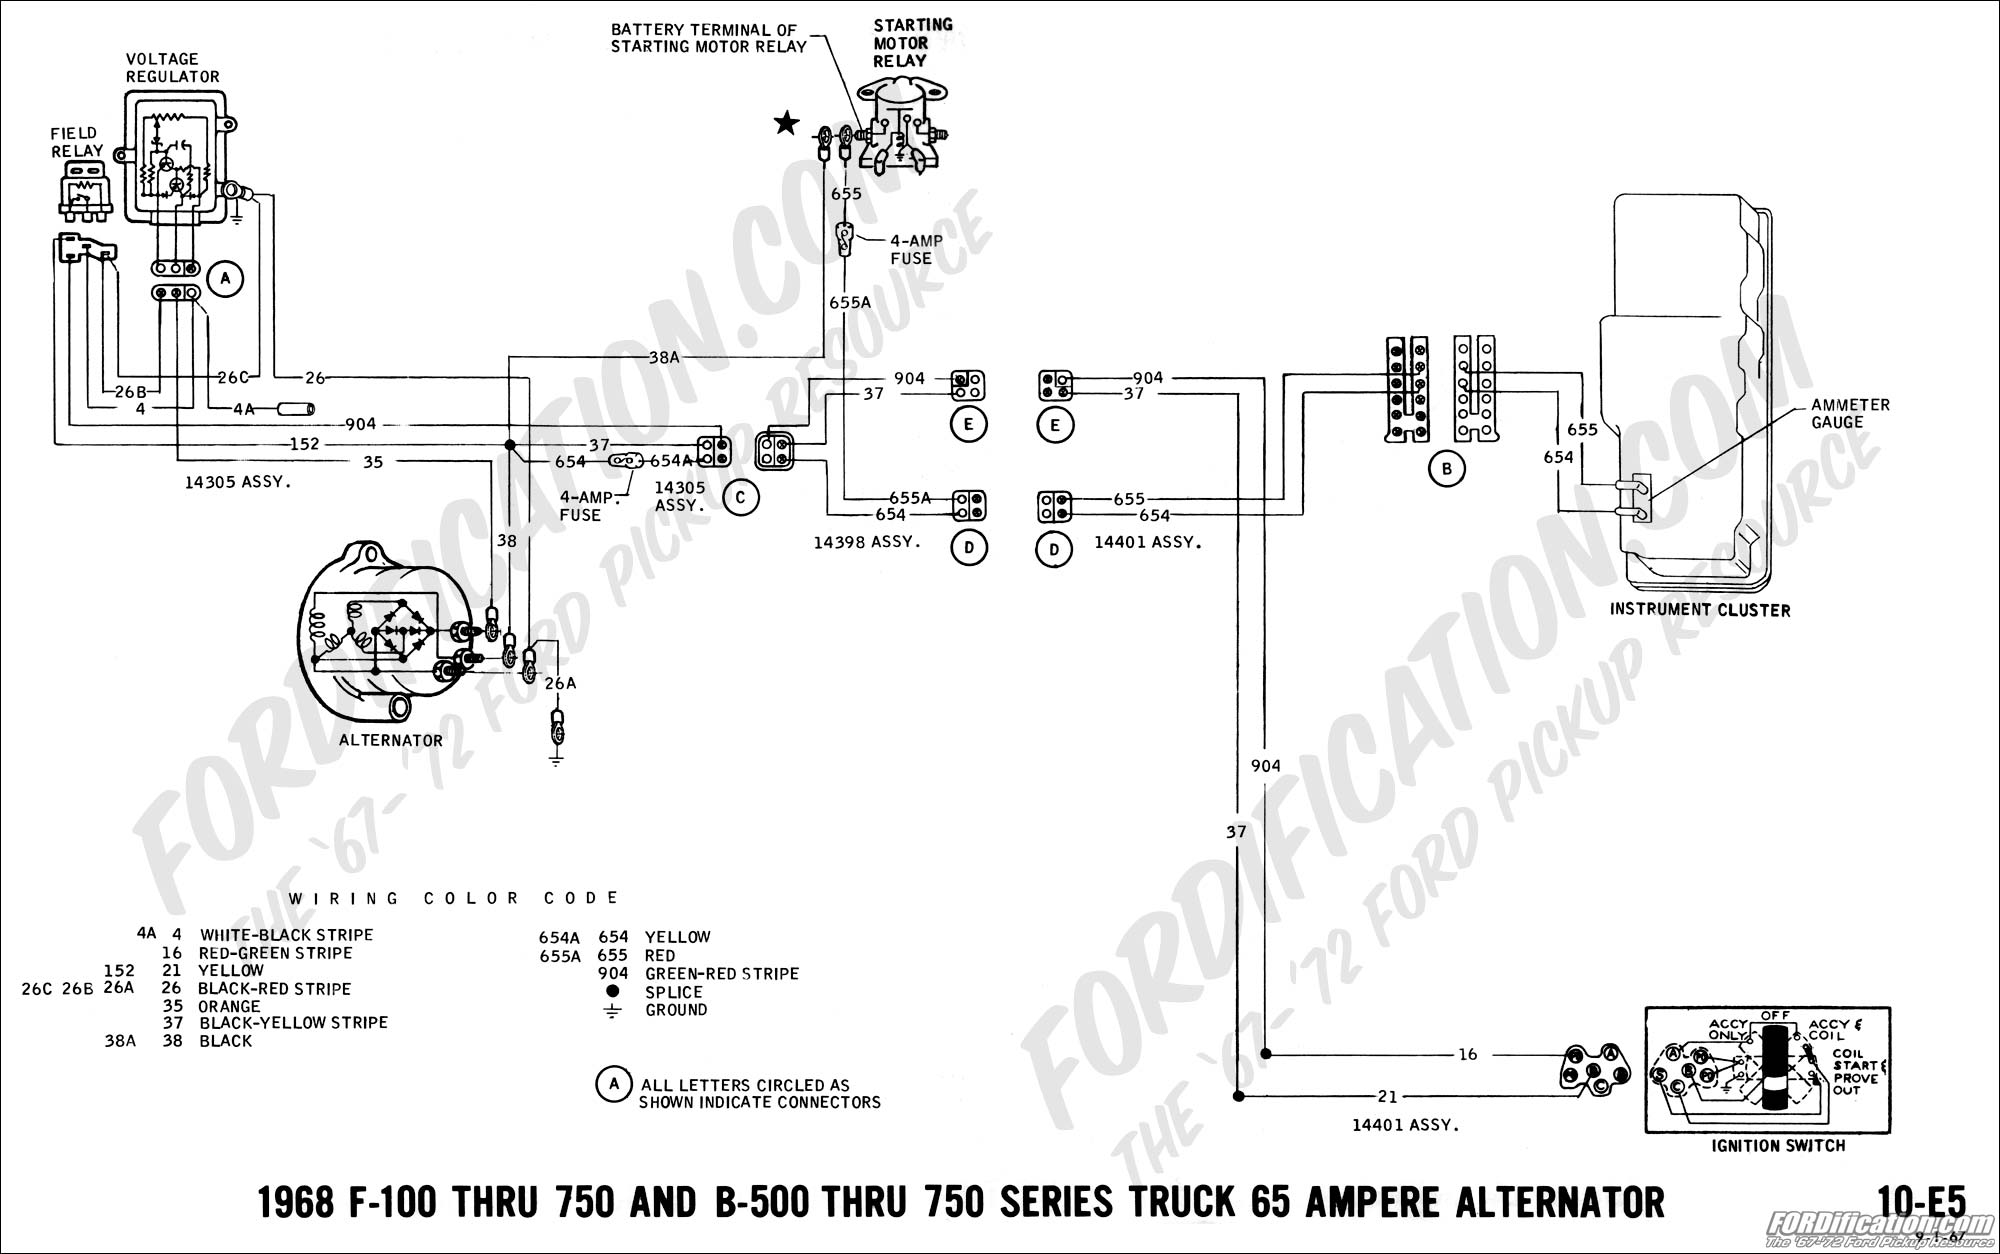 hight resolution of 1968 f 100 thru f 750 and b 500 thru f 750 65 amp alternator